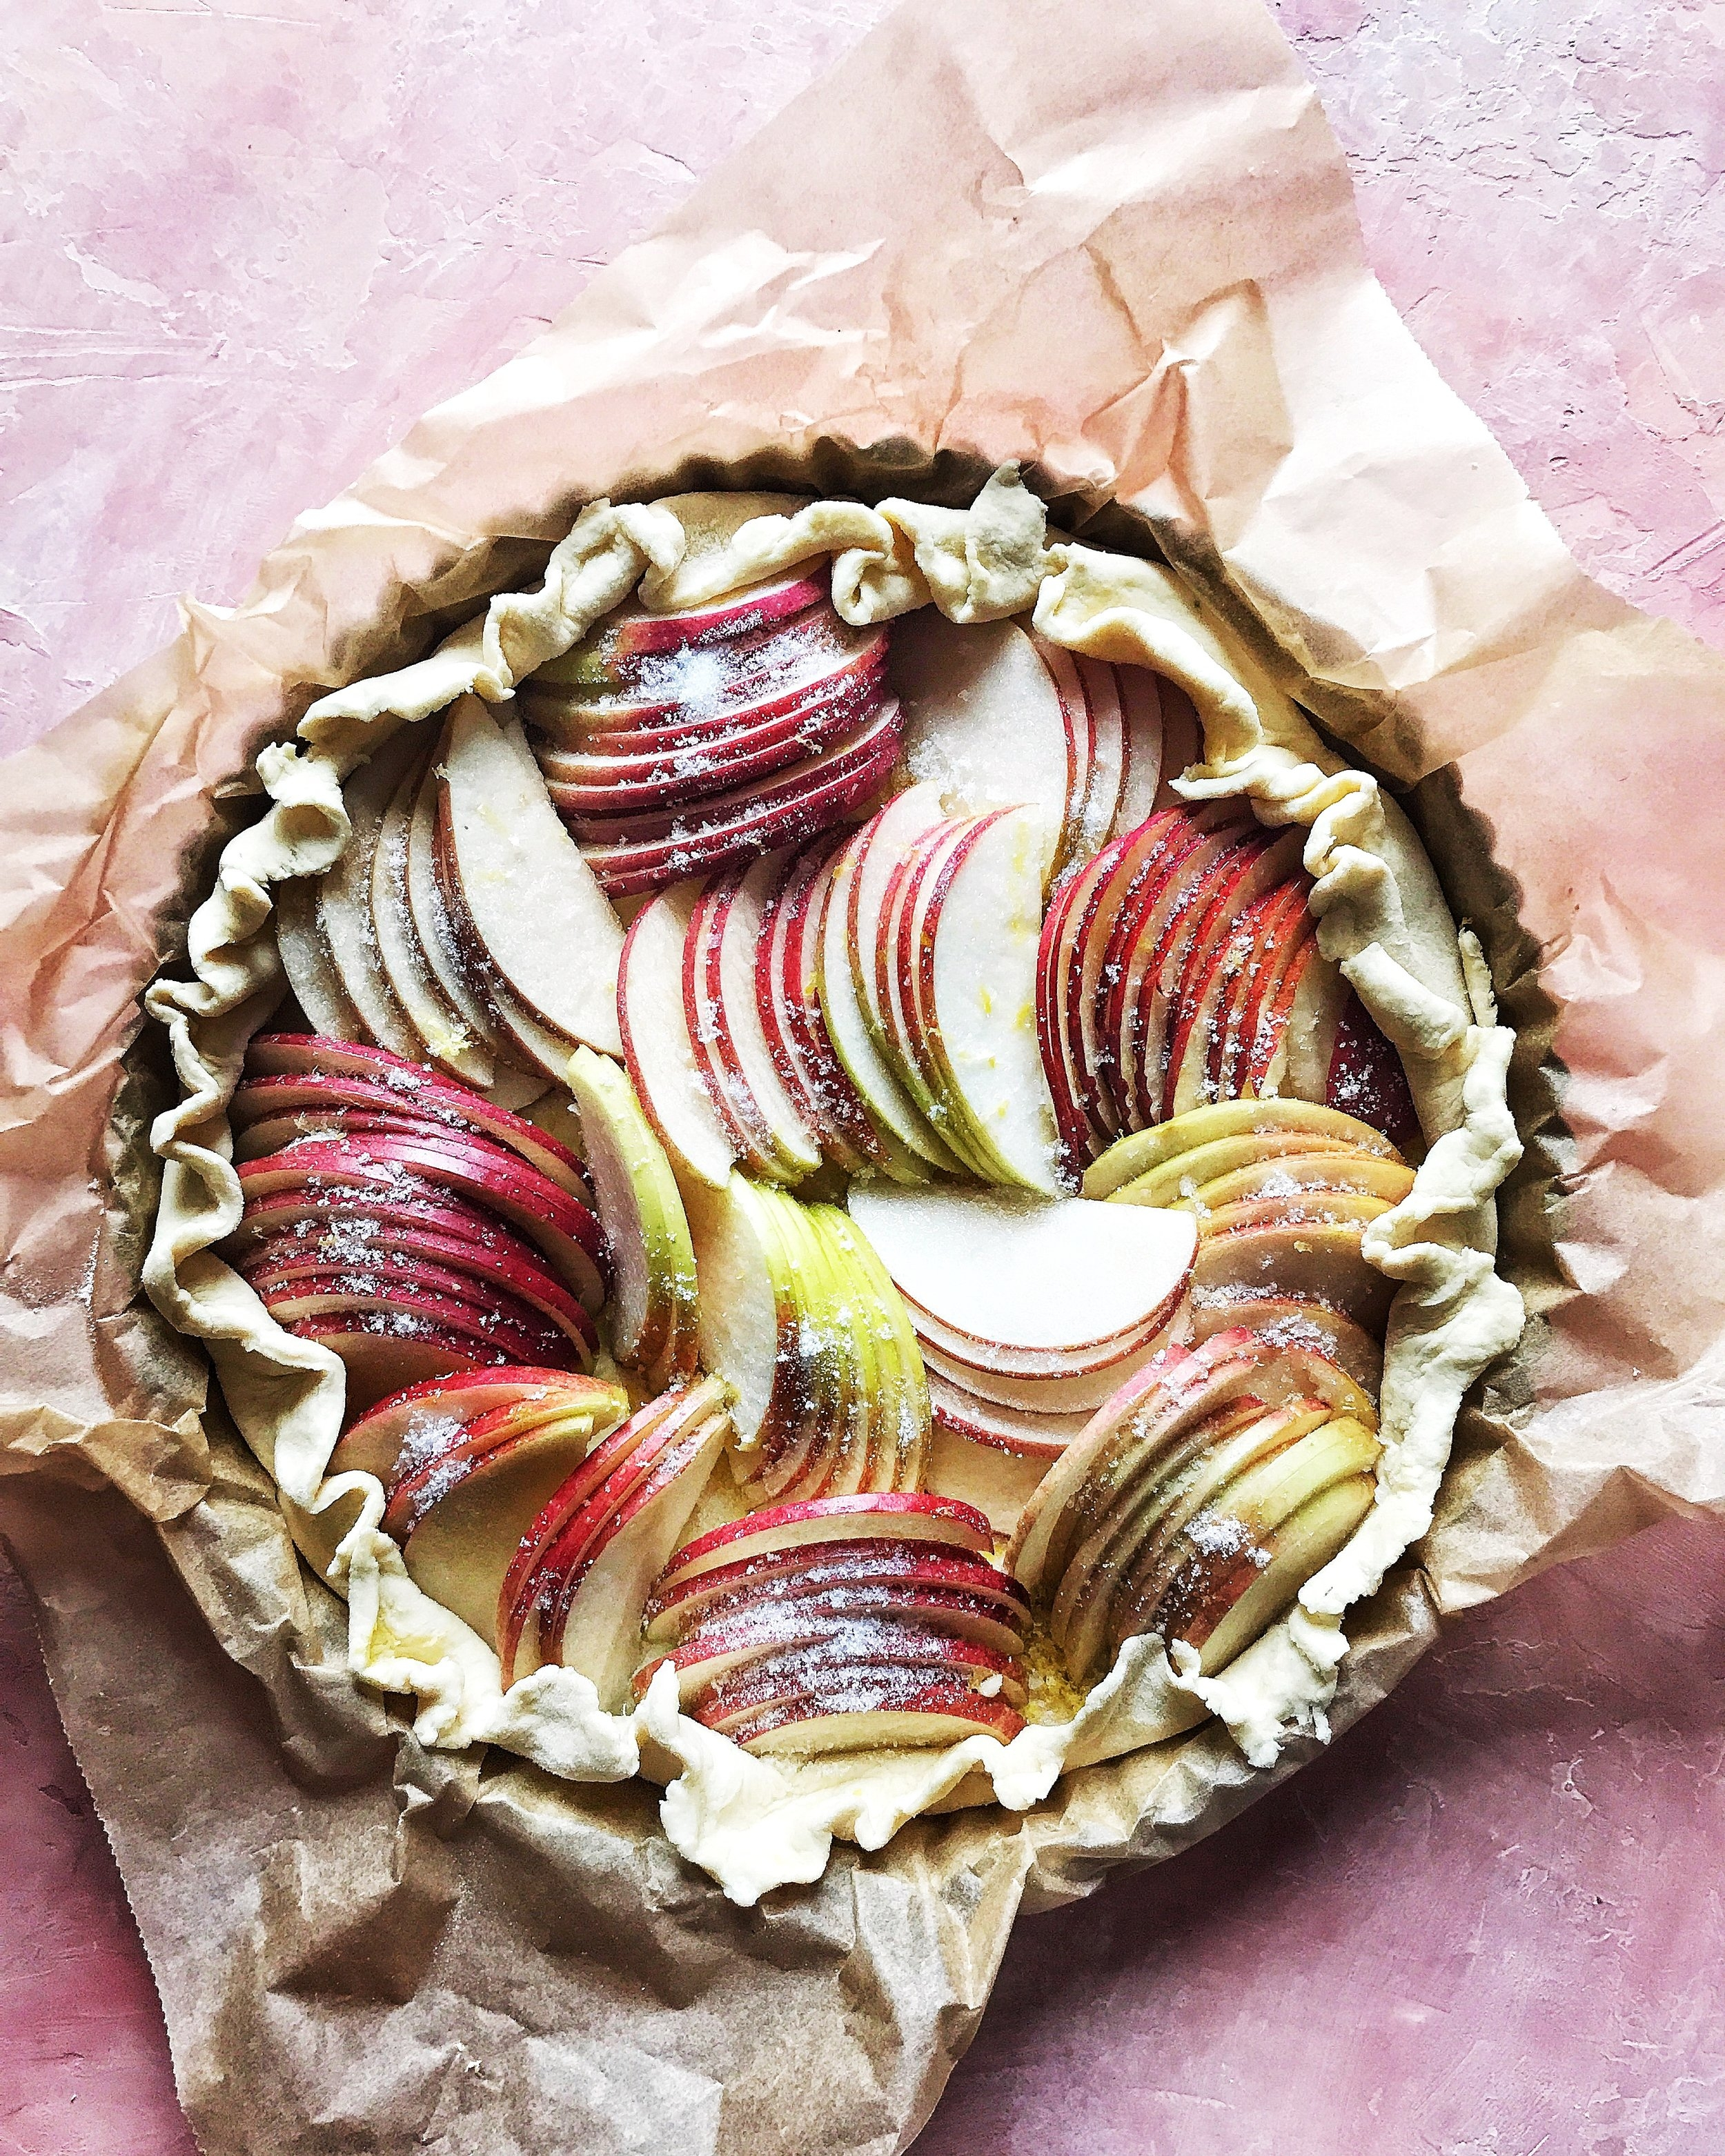 Apple Tart with Ruffled Edges by Judy Kim